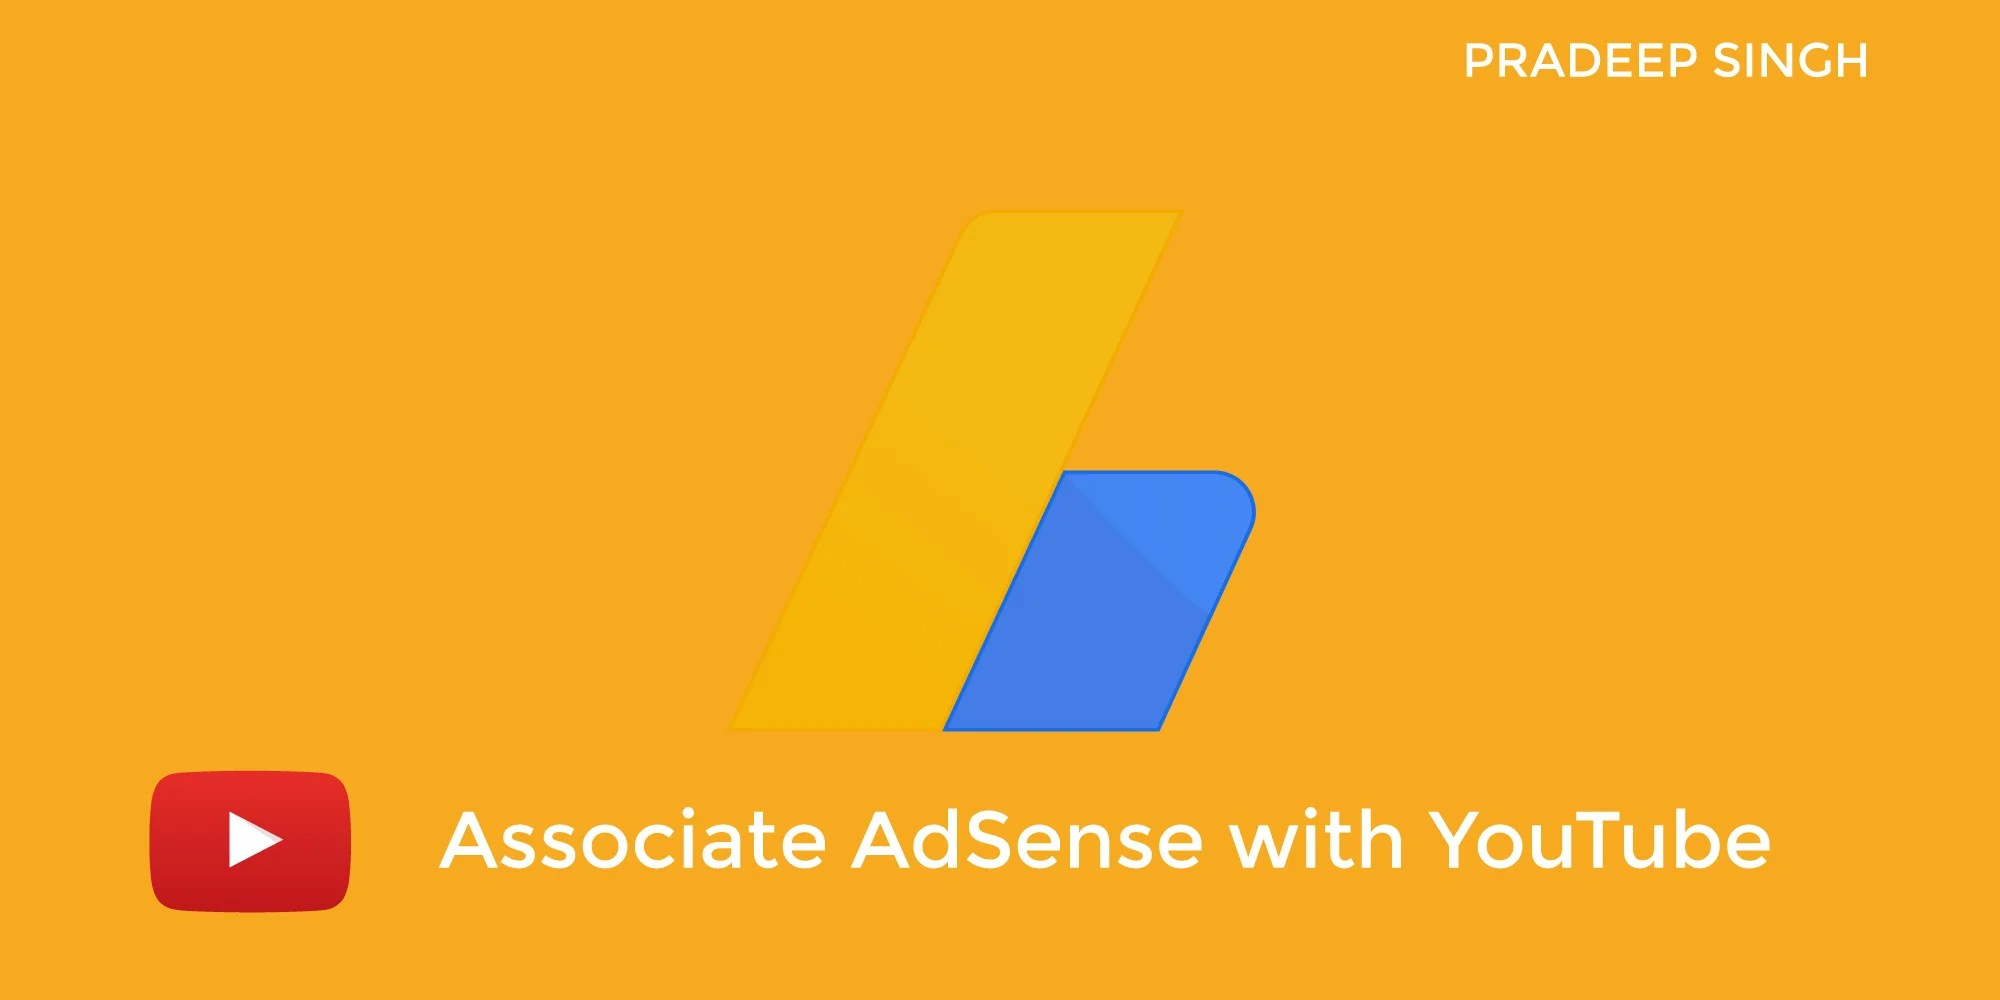 Associate YouTube with AdSense for Monetization